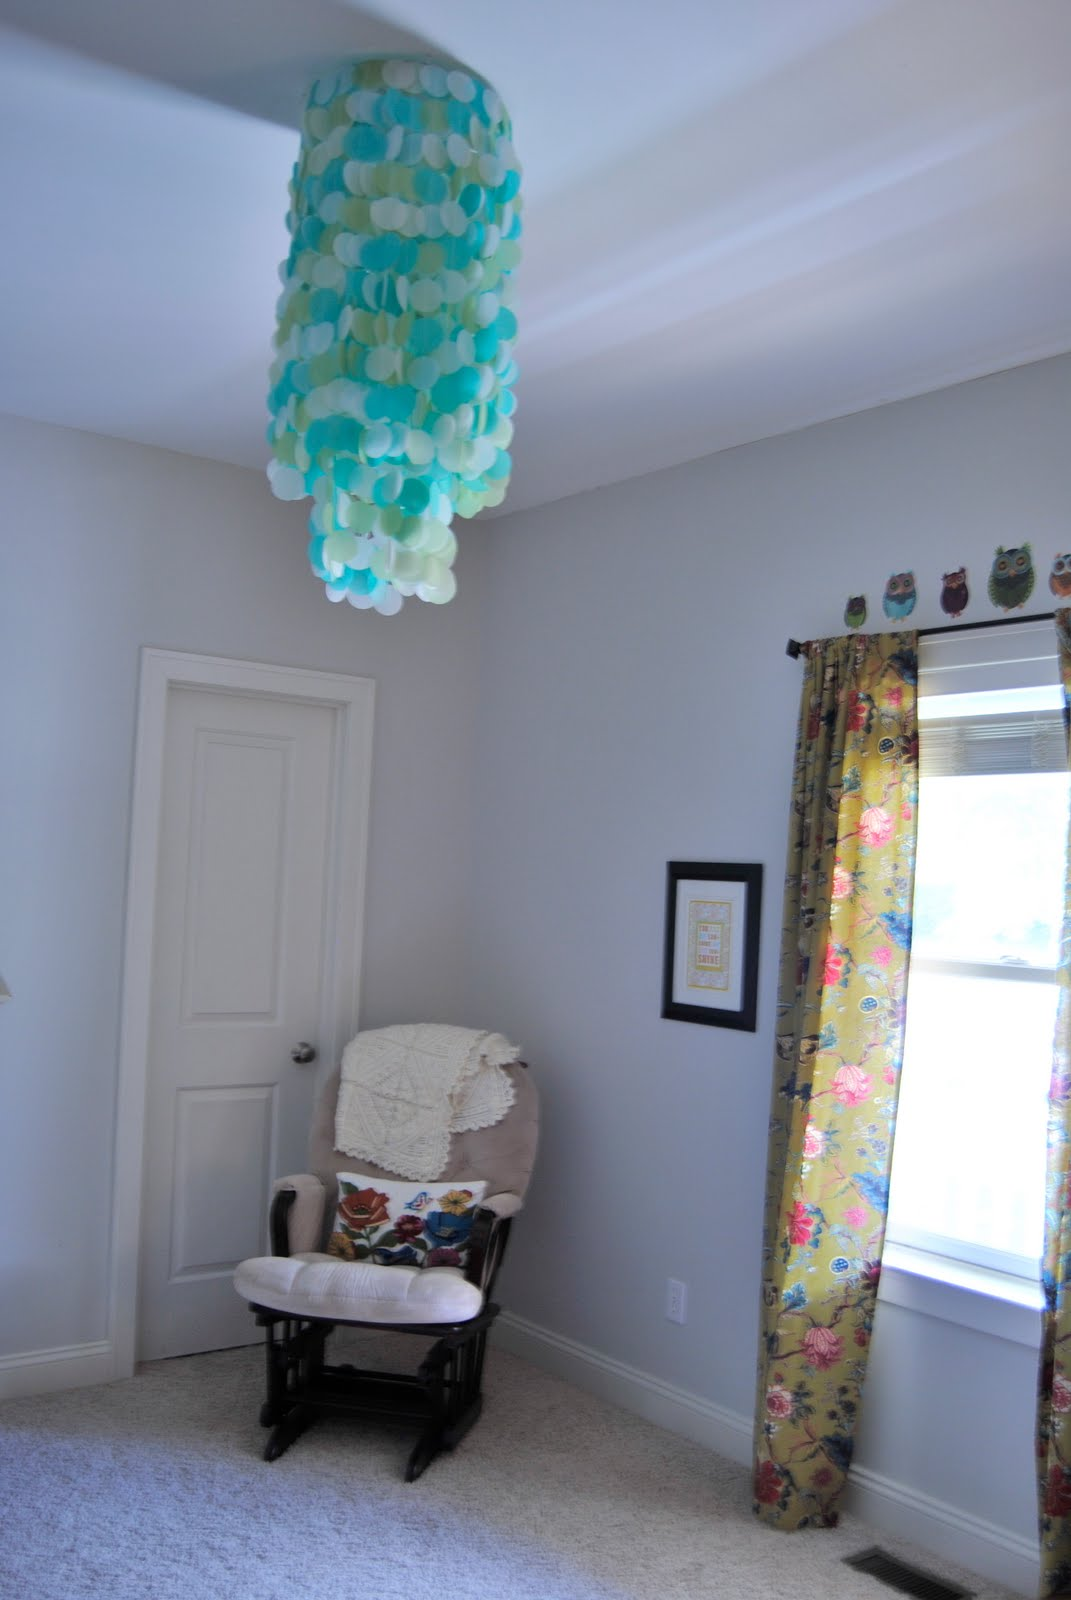 How To Make The Best Of Your Boob Light Fixtures Diy